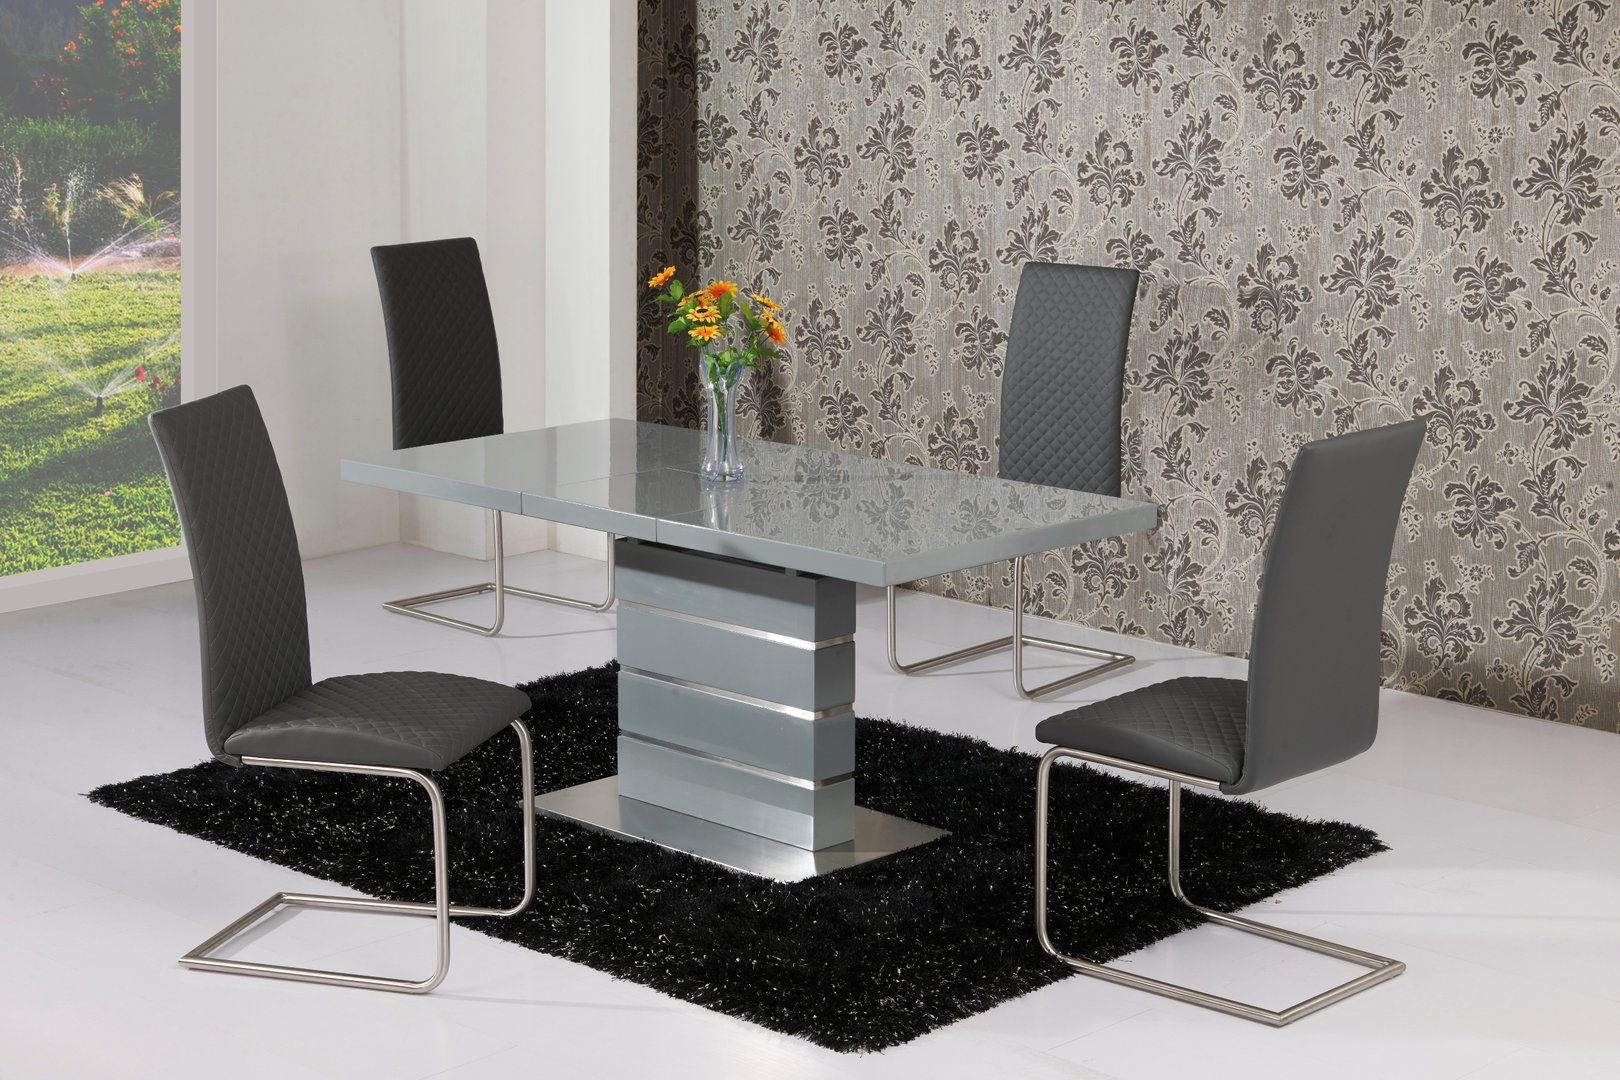 Extending Grey High Gloss Dining Table and 4 Grey Chairs